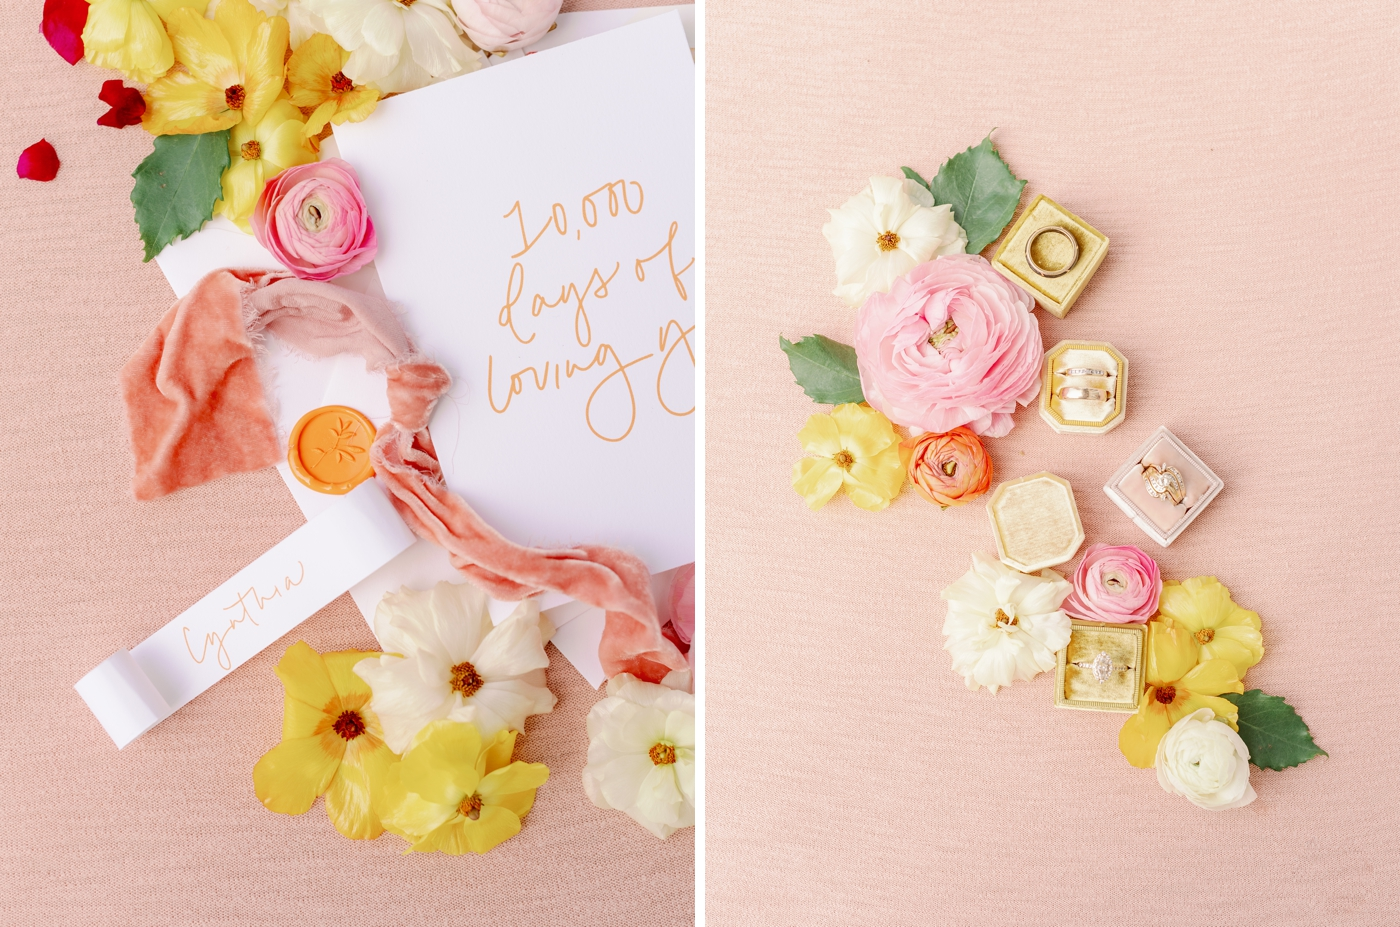 styled vow renewal photography